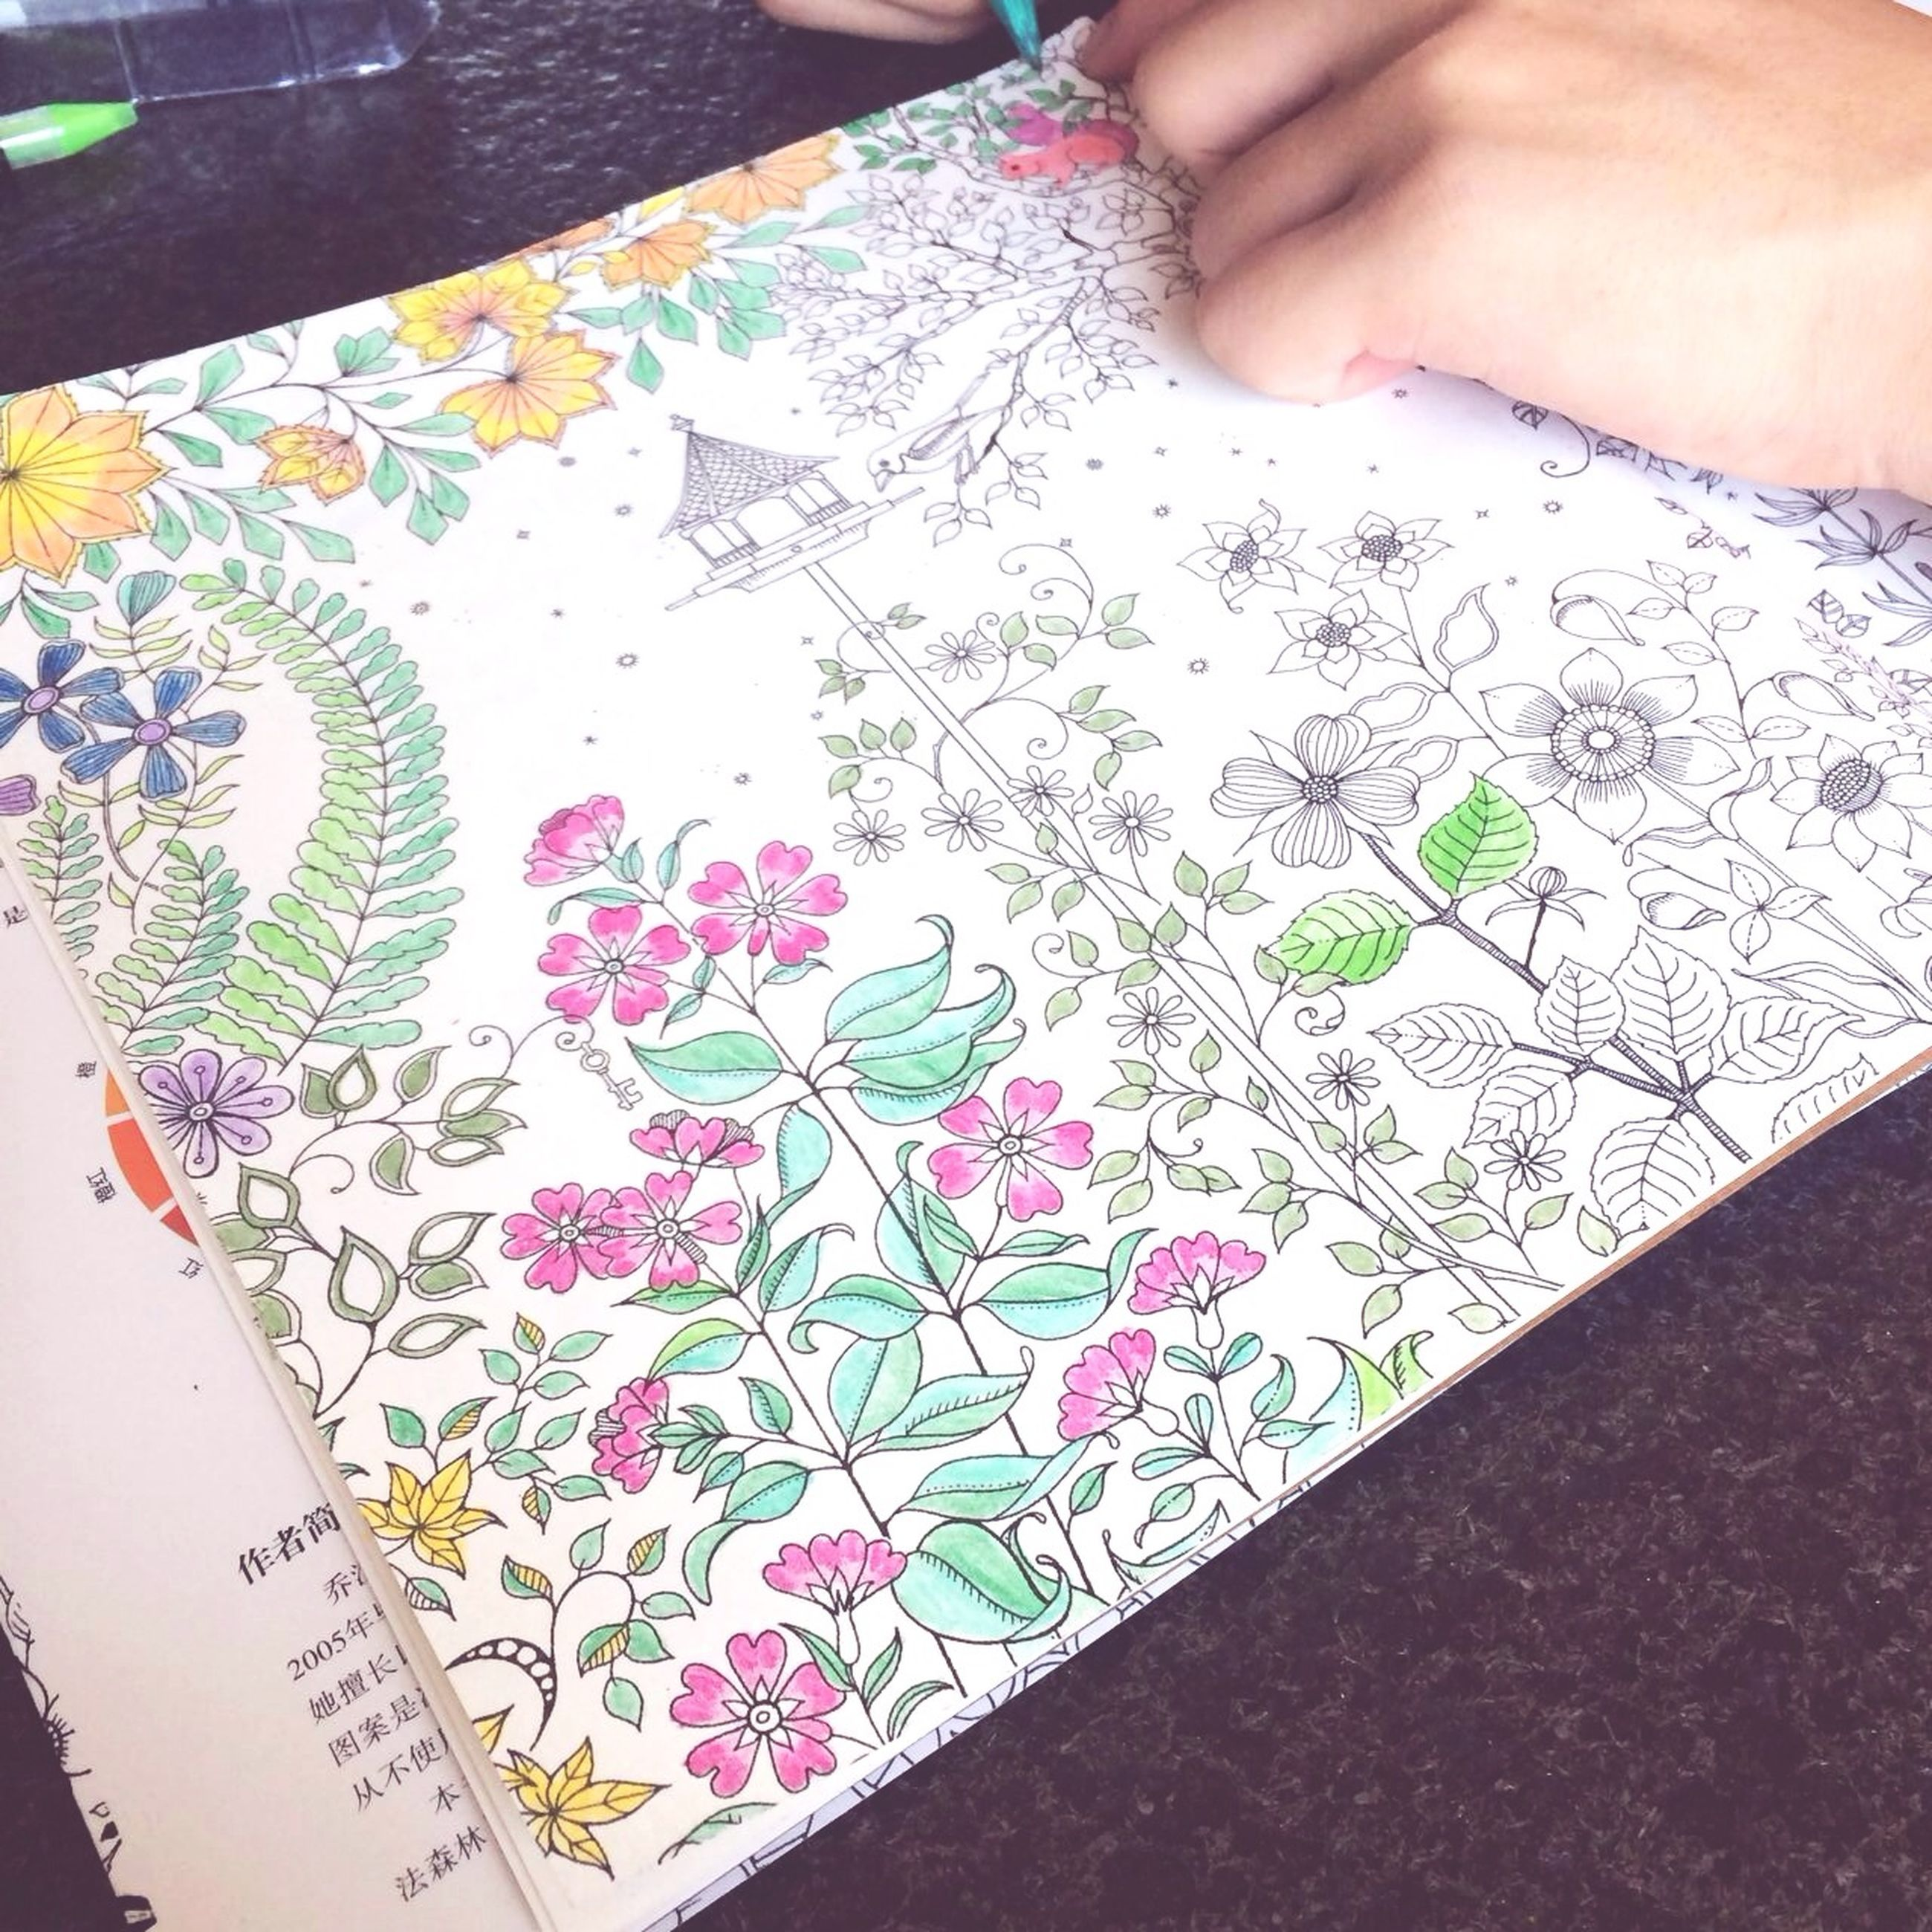 person, indoors, part of, creativity, art and craft, cropped, art, lifestyles, paper, high angle view, holding, floral pattern, close-up, unrecognizable person, leisure activity, human finger